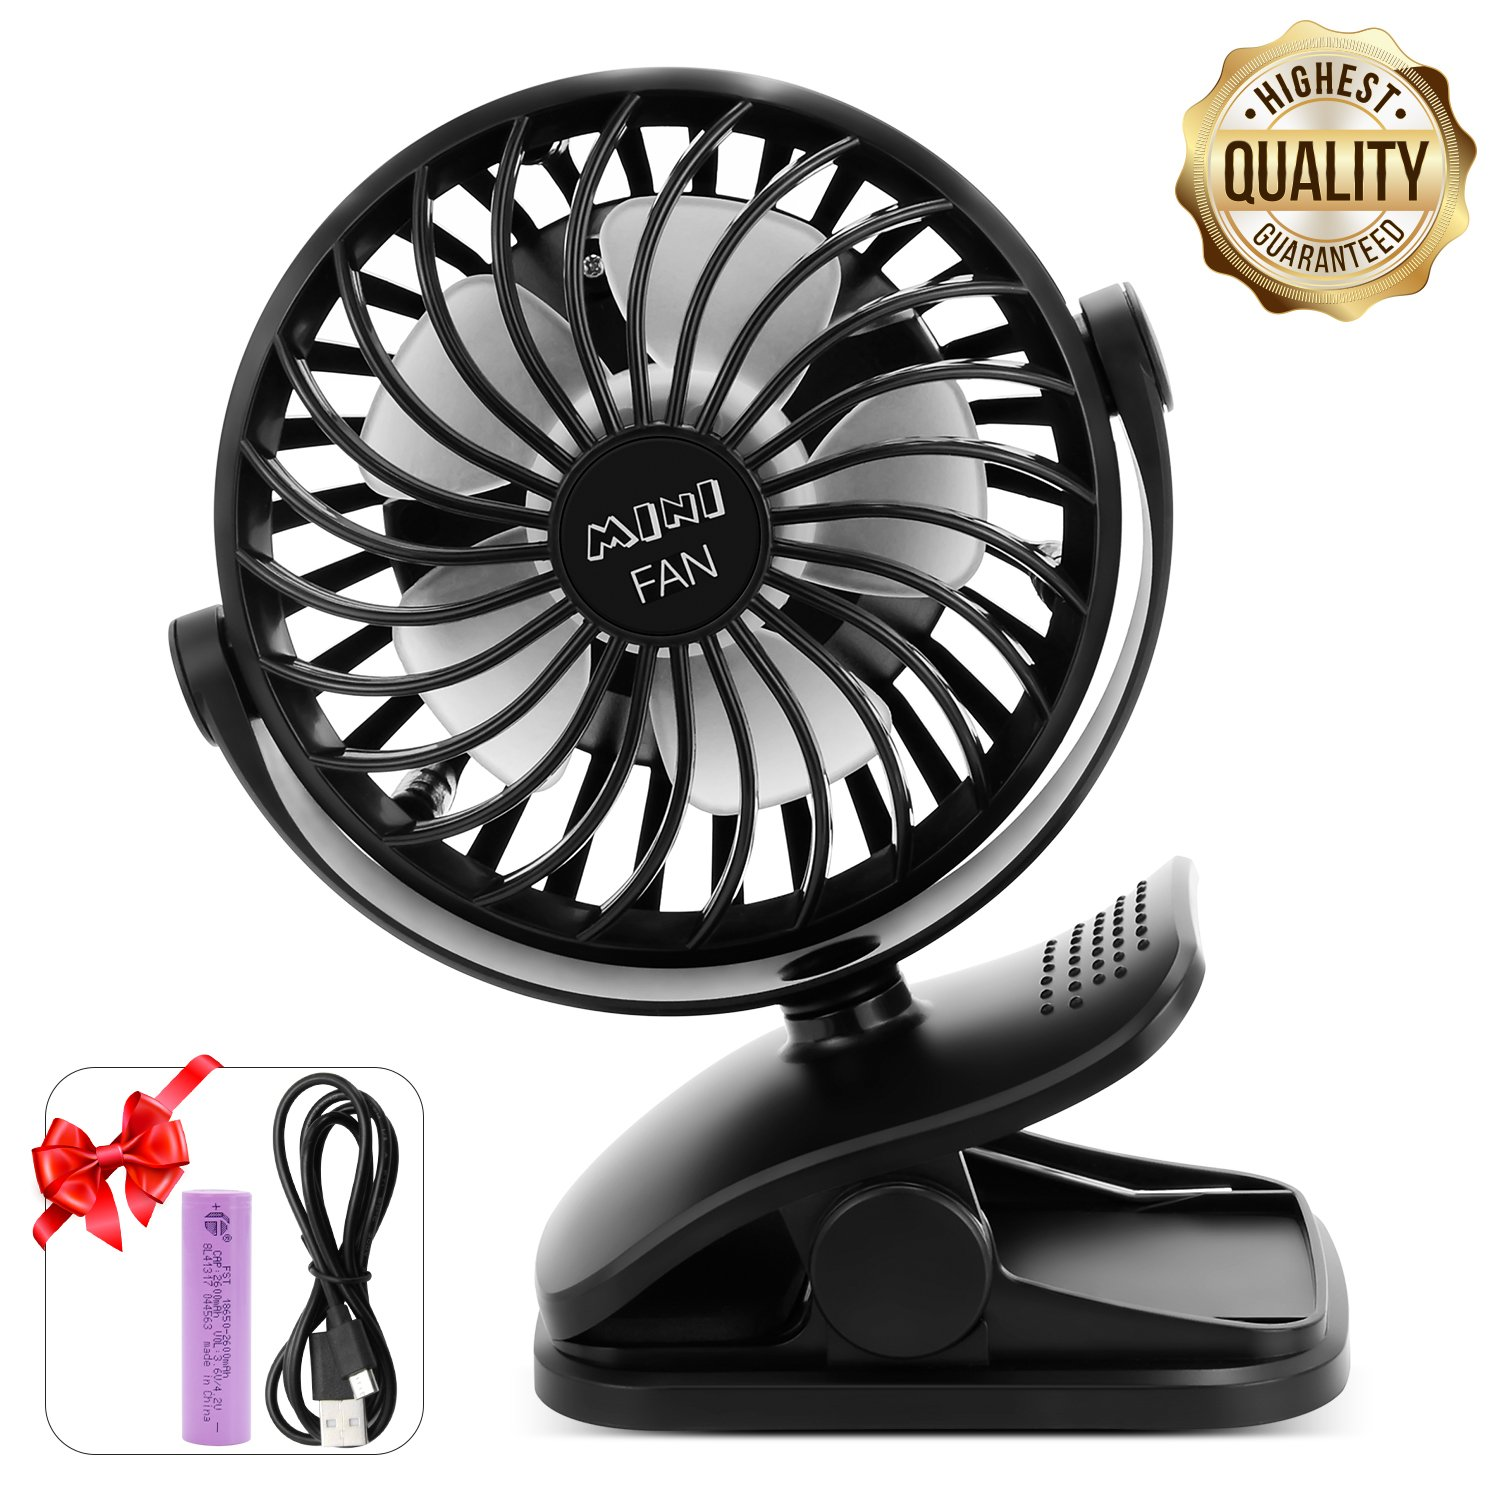 ESEOE Clip on Fan, USB Or 2600mAh Rechargeable Battery Operated Fan Small Desk Fan with 4 Speeds, 360 Degree Rotation Portable Stroller Fan for Baby S (Black) by ESEOE